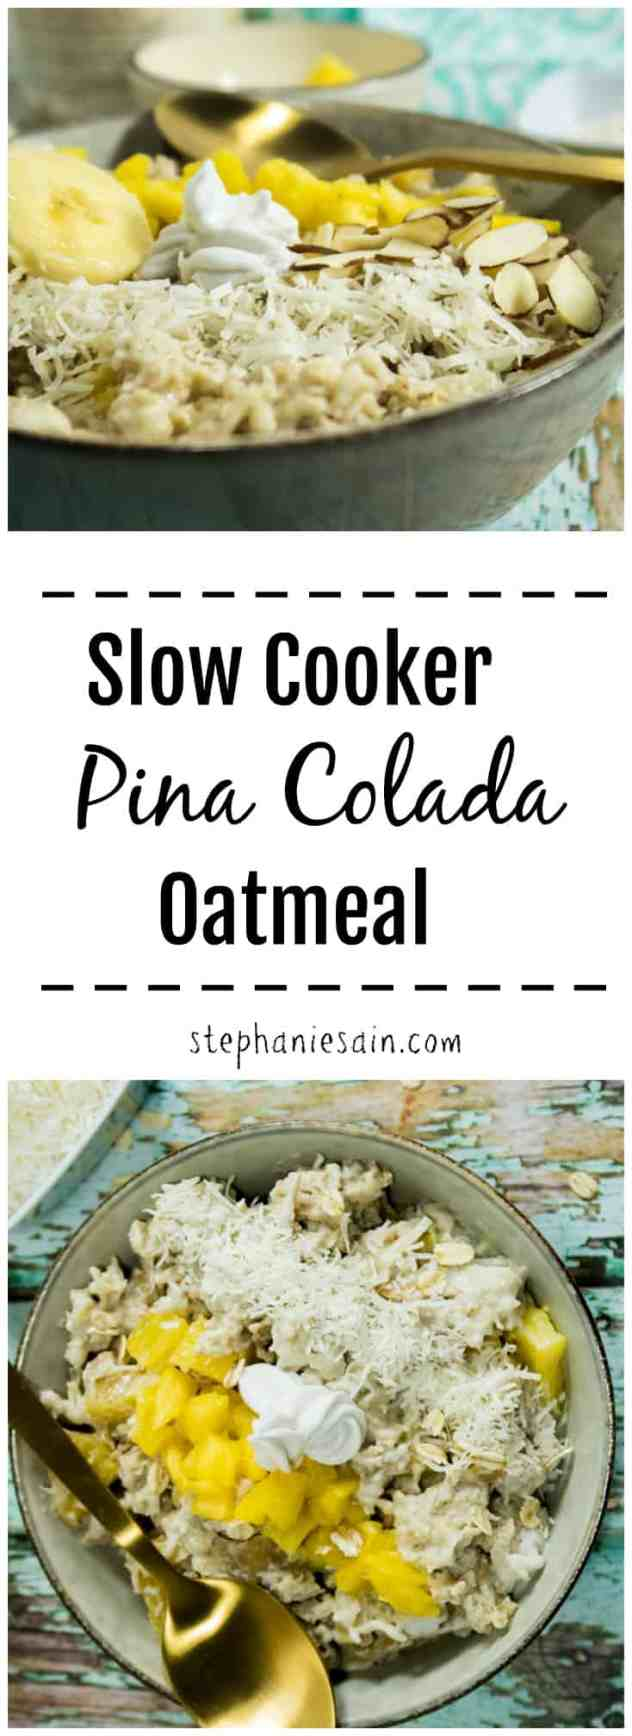 Slow Cooker Pina Colada Oatmeal is an easy, tasty make ahead breakfast. Bursting with tropical flavors and aroma for a great way to start your day. Vegan and Gluten Free.